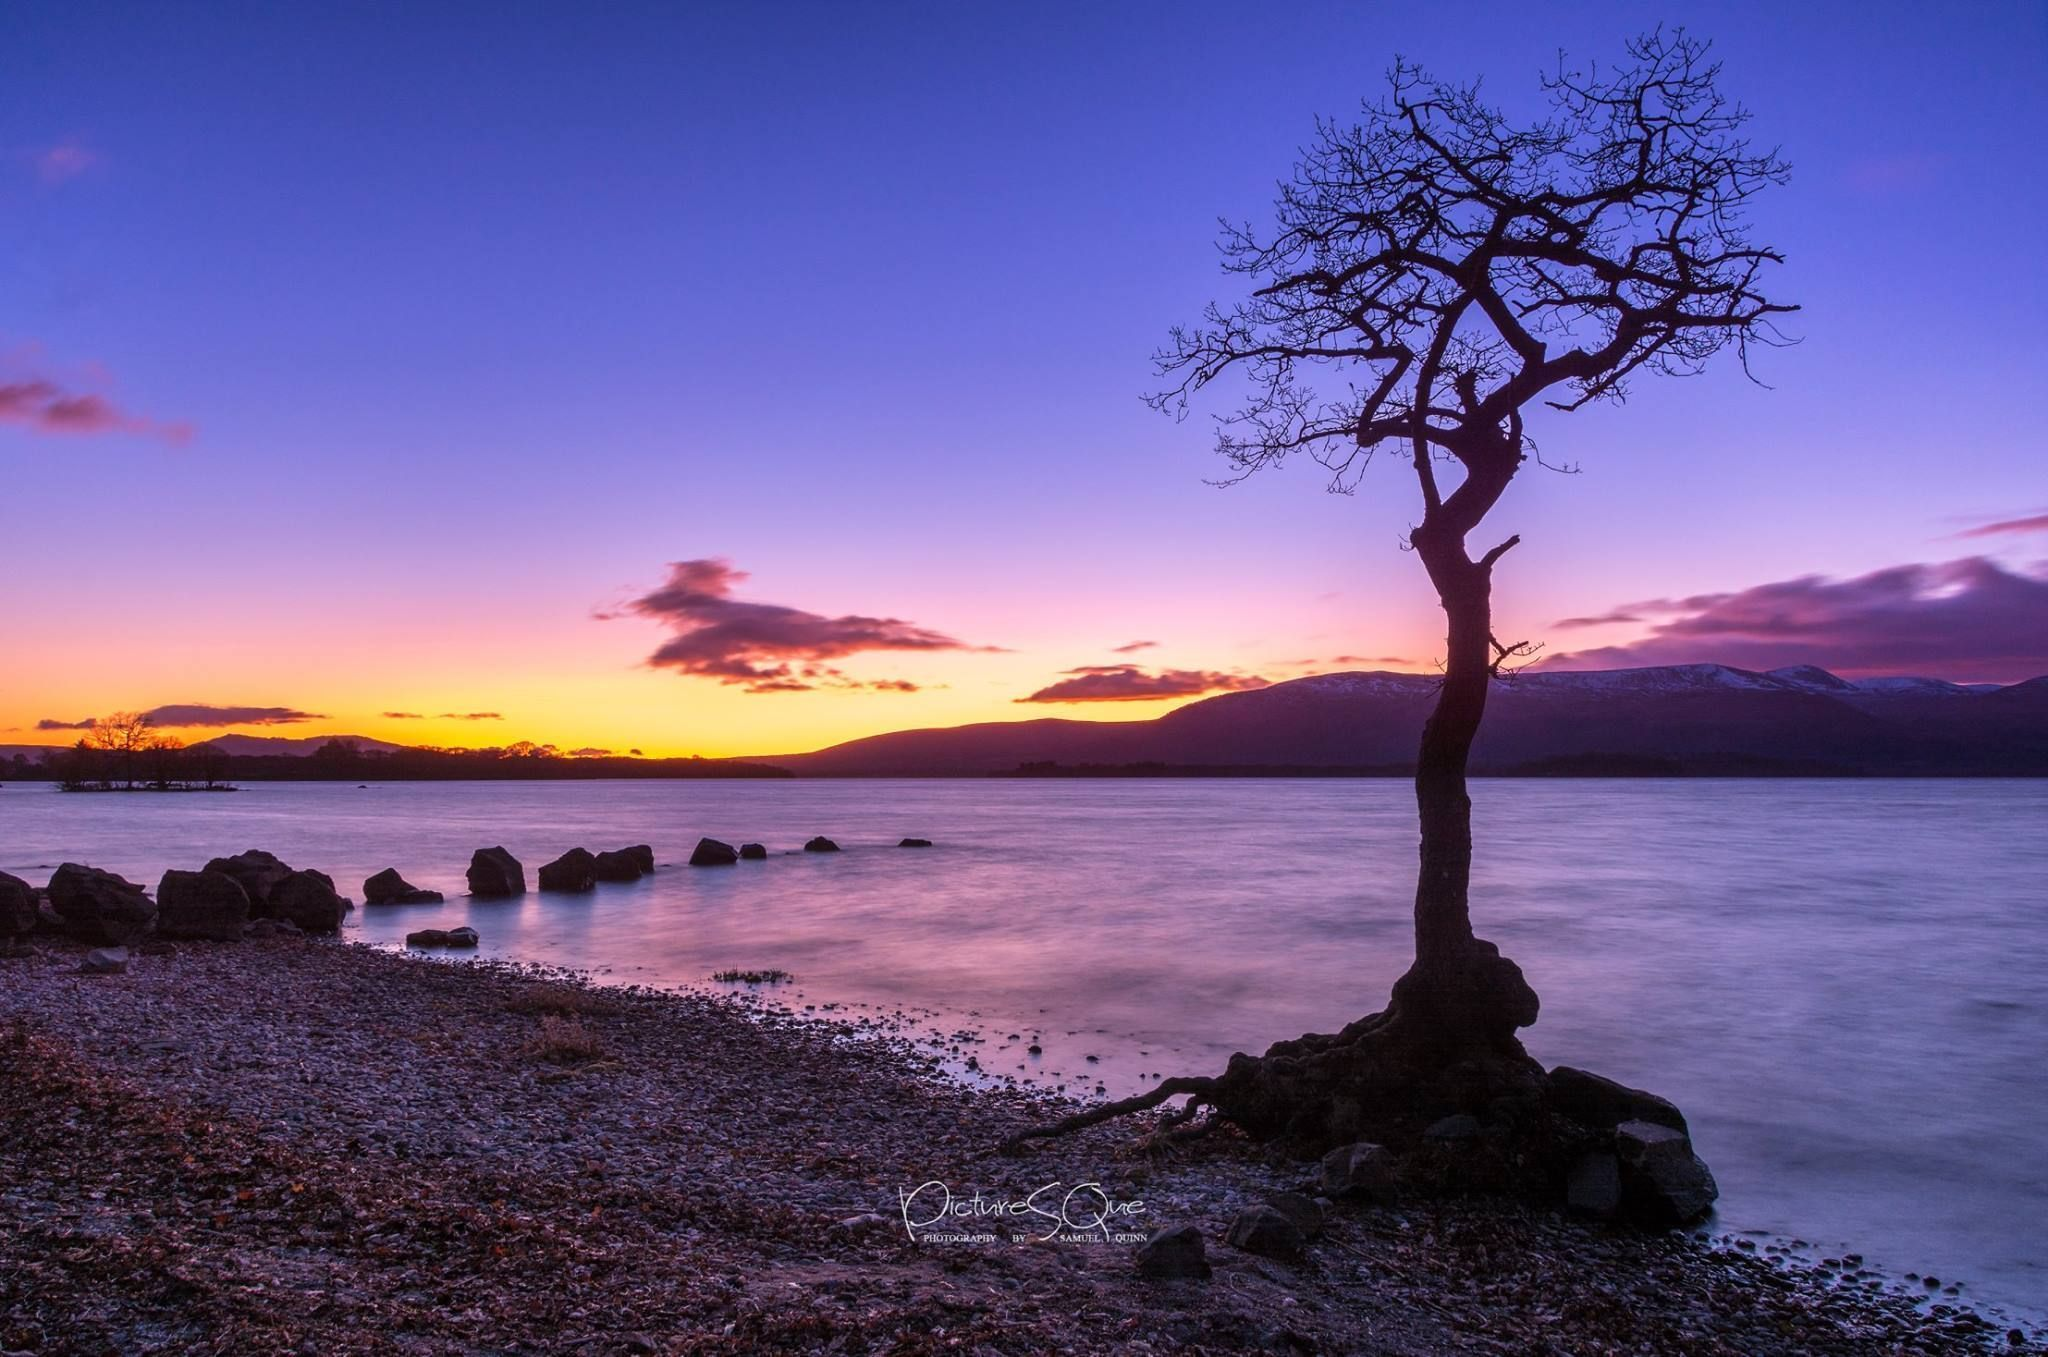 loch lomond and the famous tree at sunset #lochlomond loch lomond and the famous tree at sunset #lochlomond loch lomond and the famous tree at sunset #lochlomond loch lomond and the famous tree at sunset #lochlomond loch lomond and the famous tree at sunset #lochlomond loch lomond and the famous tree at sunset #lochlomond loch lomond and the famous tree at sunset #lochlomond loch lomond and the famous tree at sunset #lochlomond